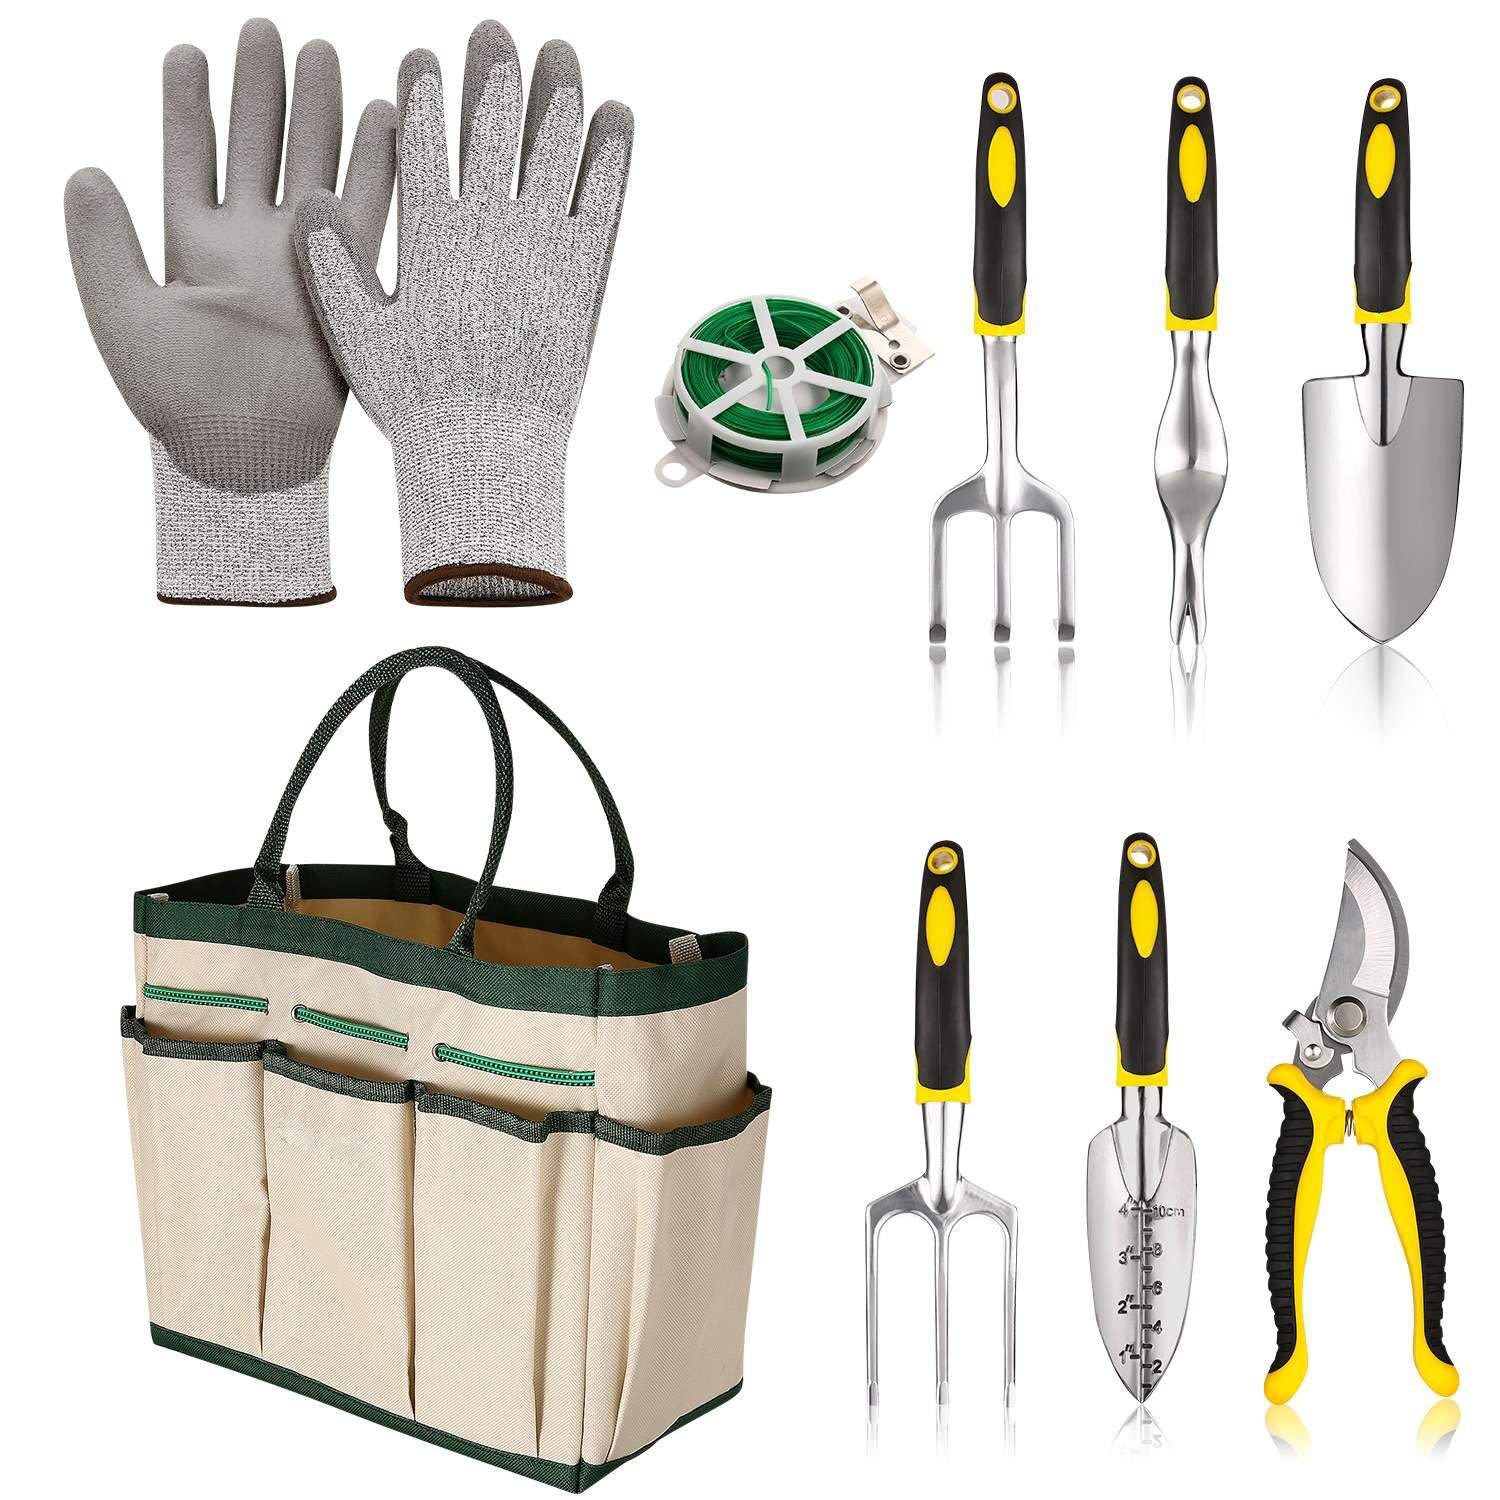 evokem 9 Piece Garden Tools Kit, Vegetable Herb Gardening Tools with Storage Tote - Garden Trowel Pruners, 5 Garden Hand Tools, Garden Gloves, A Plant Rope (US STOCK) (White)